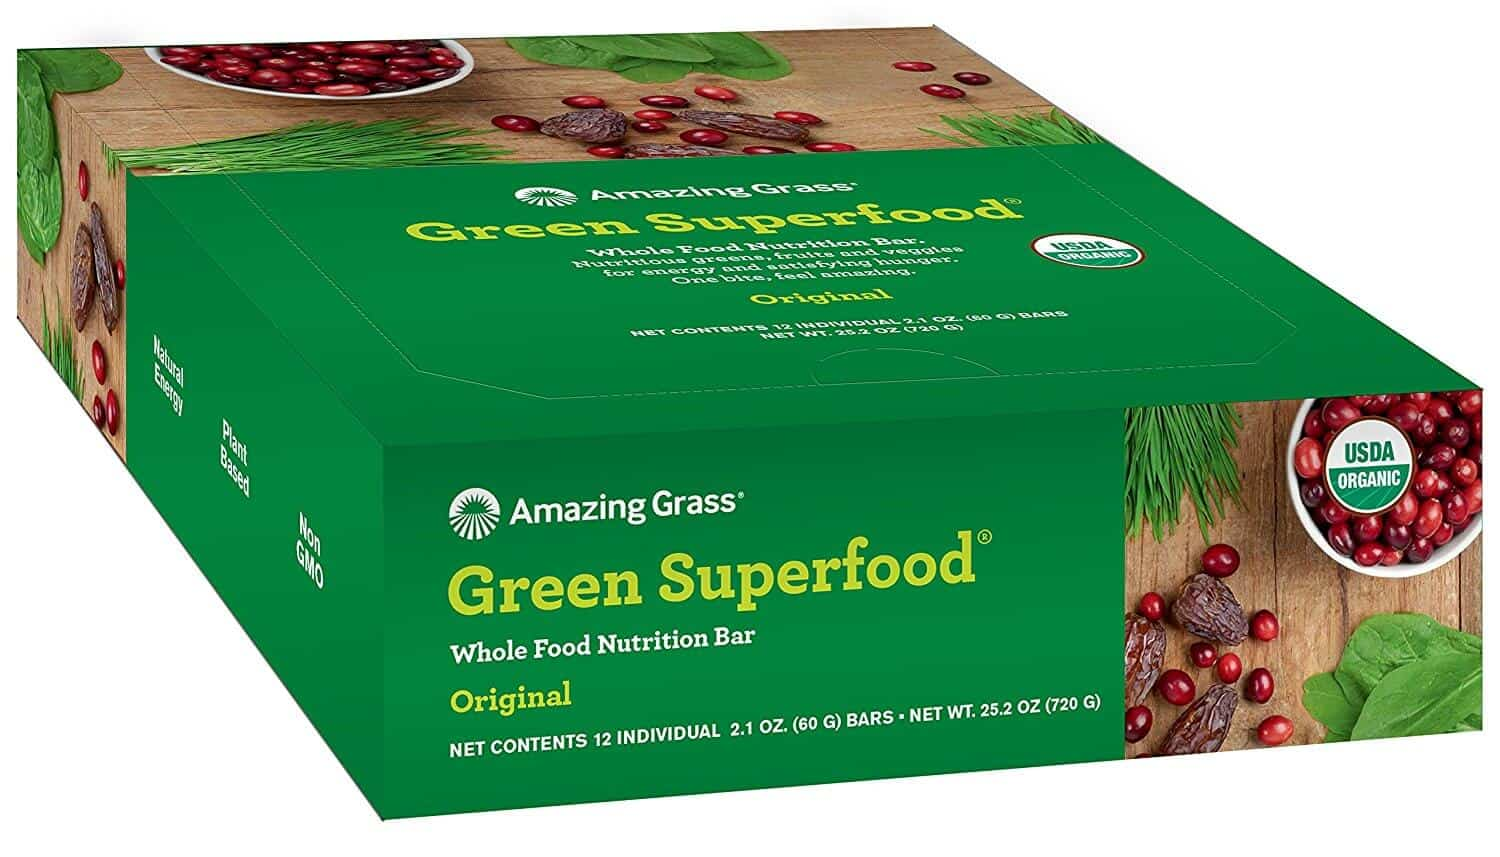 Amazing Grass Green Superfood Ingredients